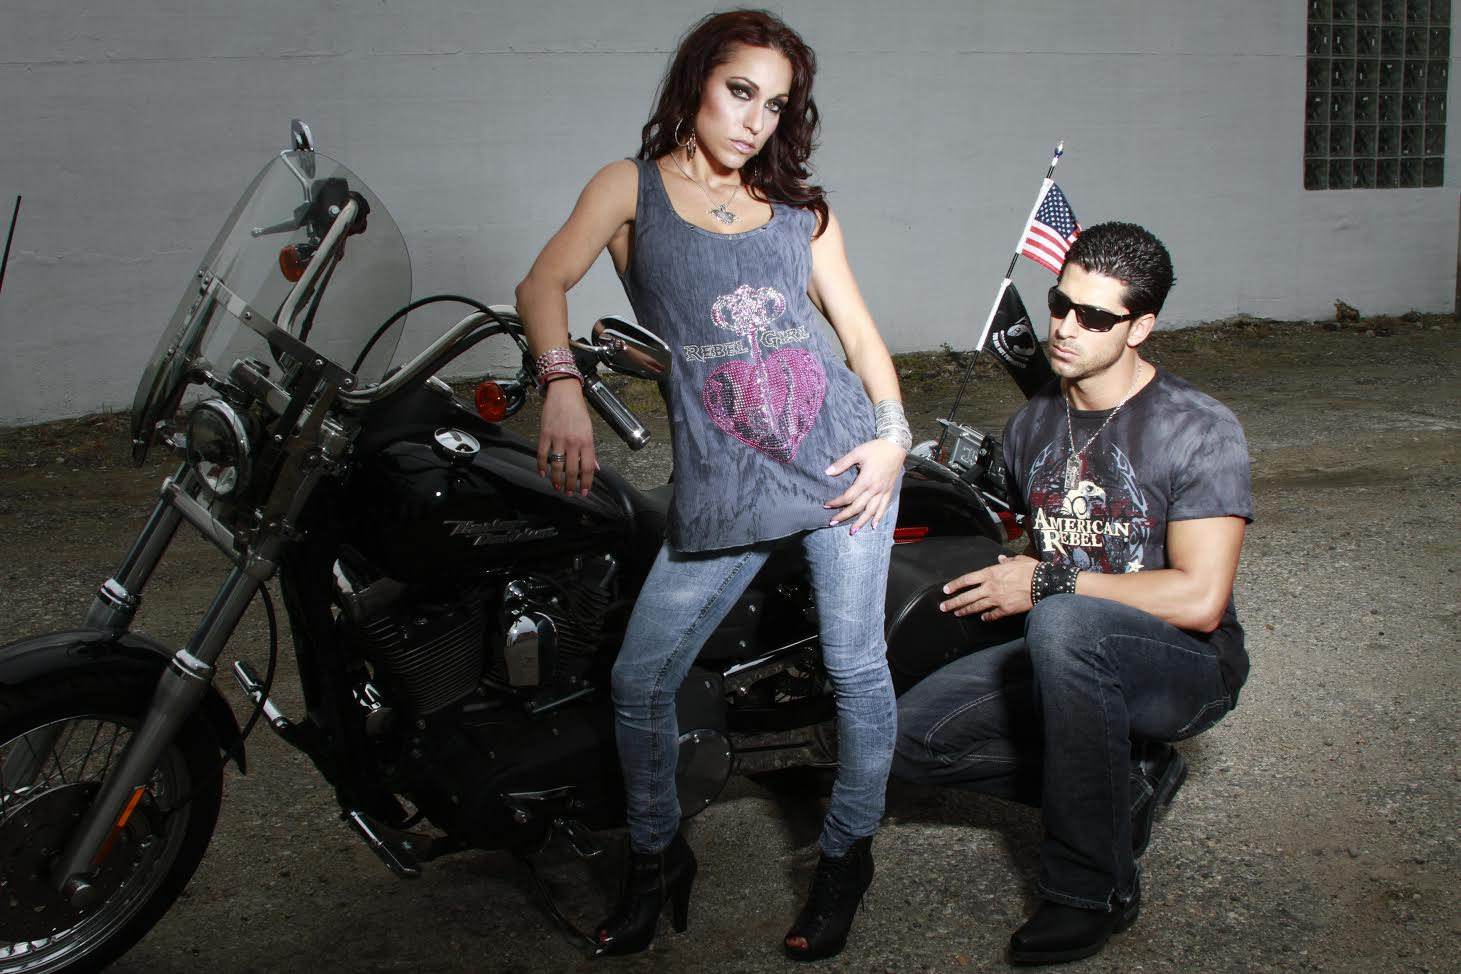 Rebel Girl and American Rebel T-Shirts